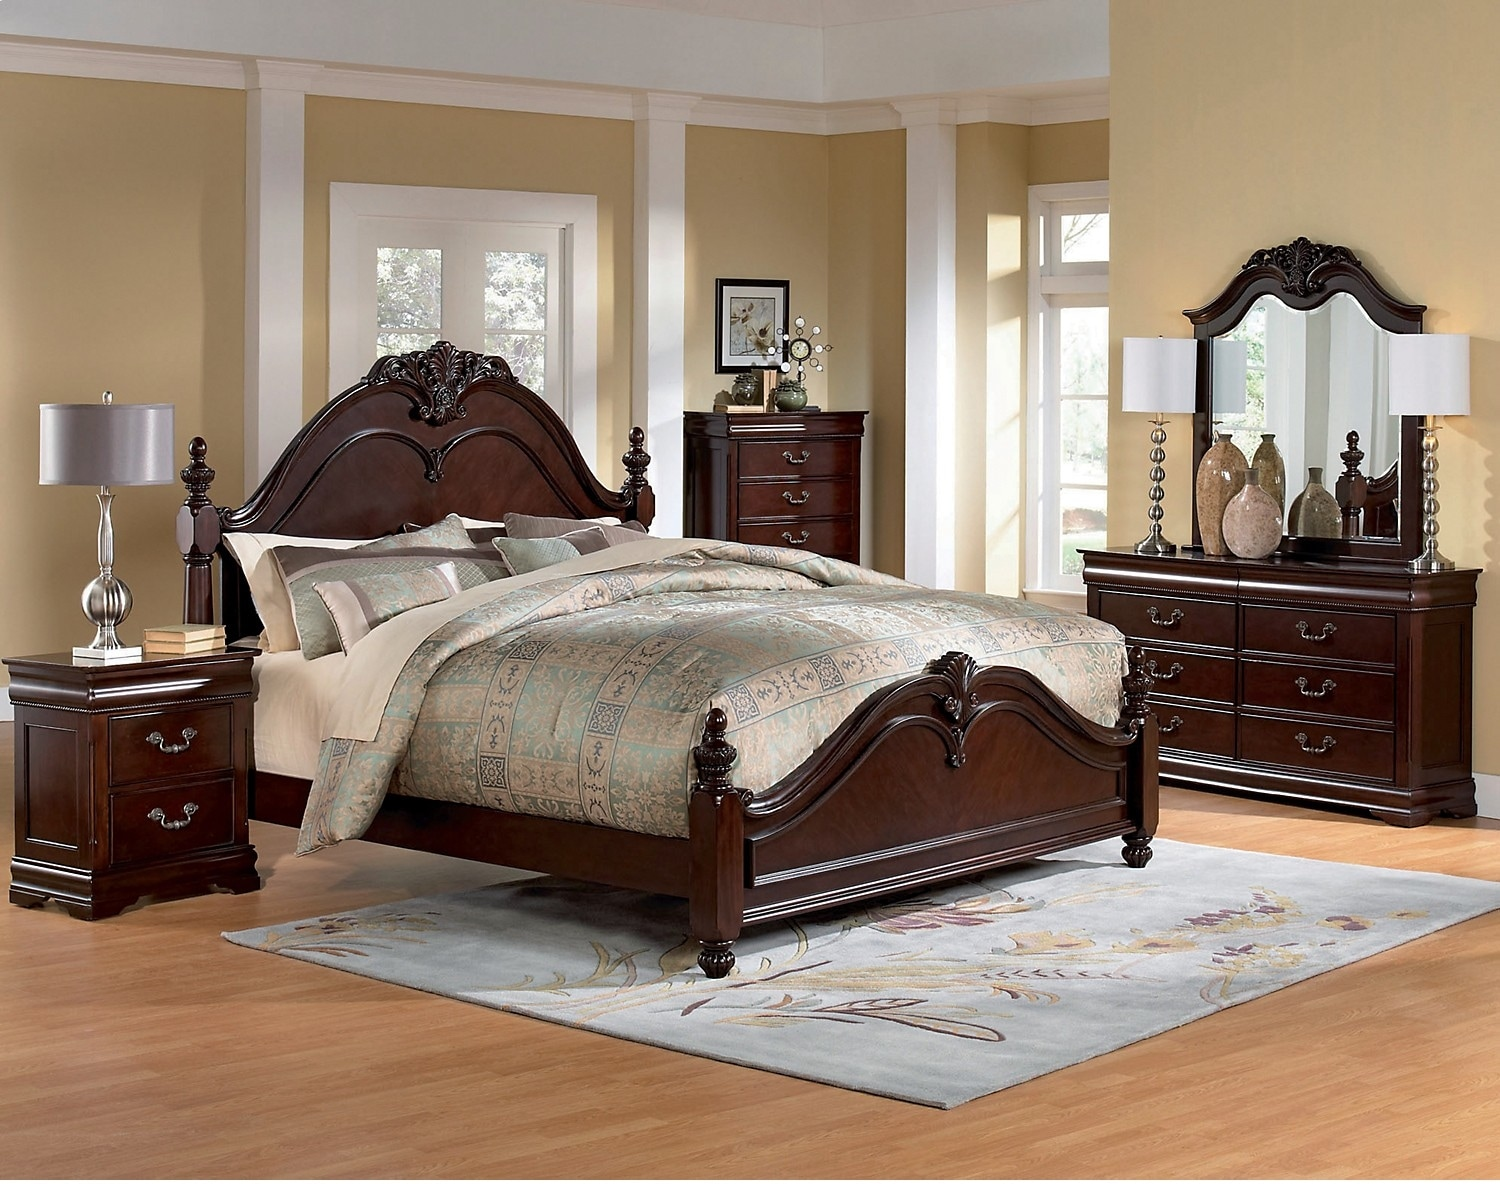 Westchester 6 Piece Queen Bedroom Set The Brick